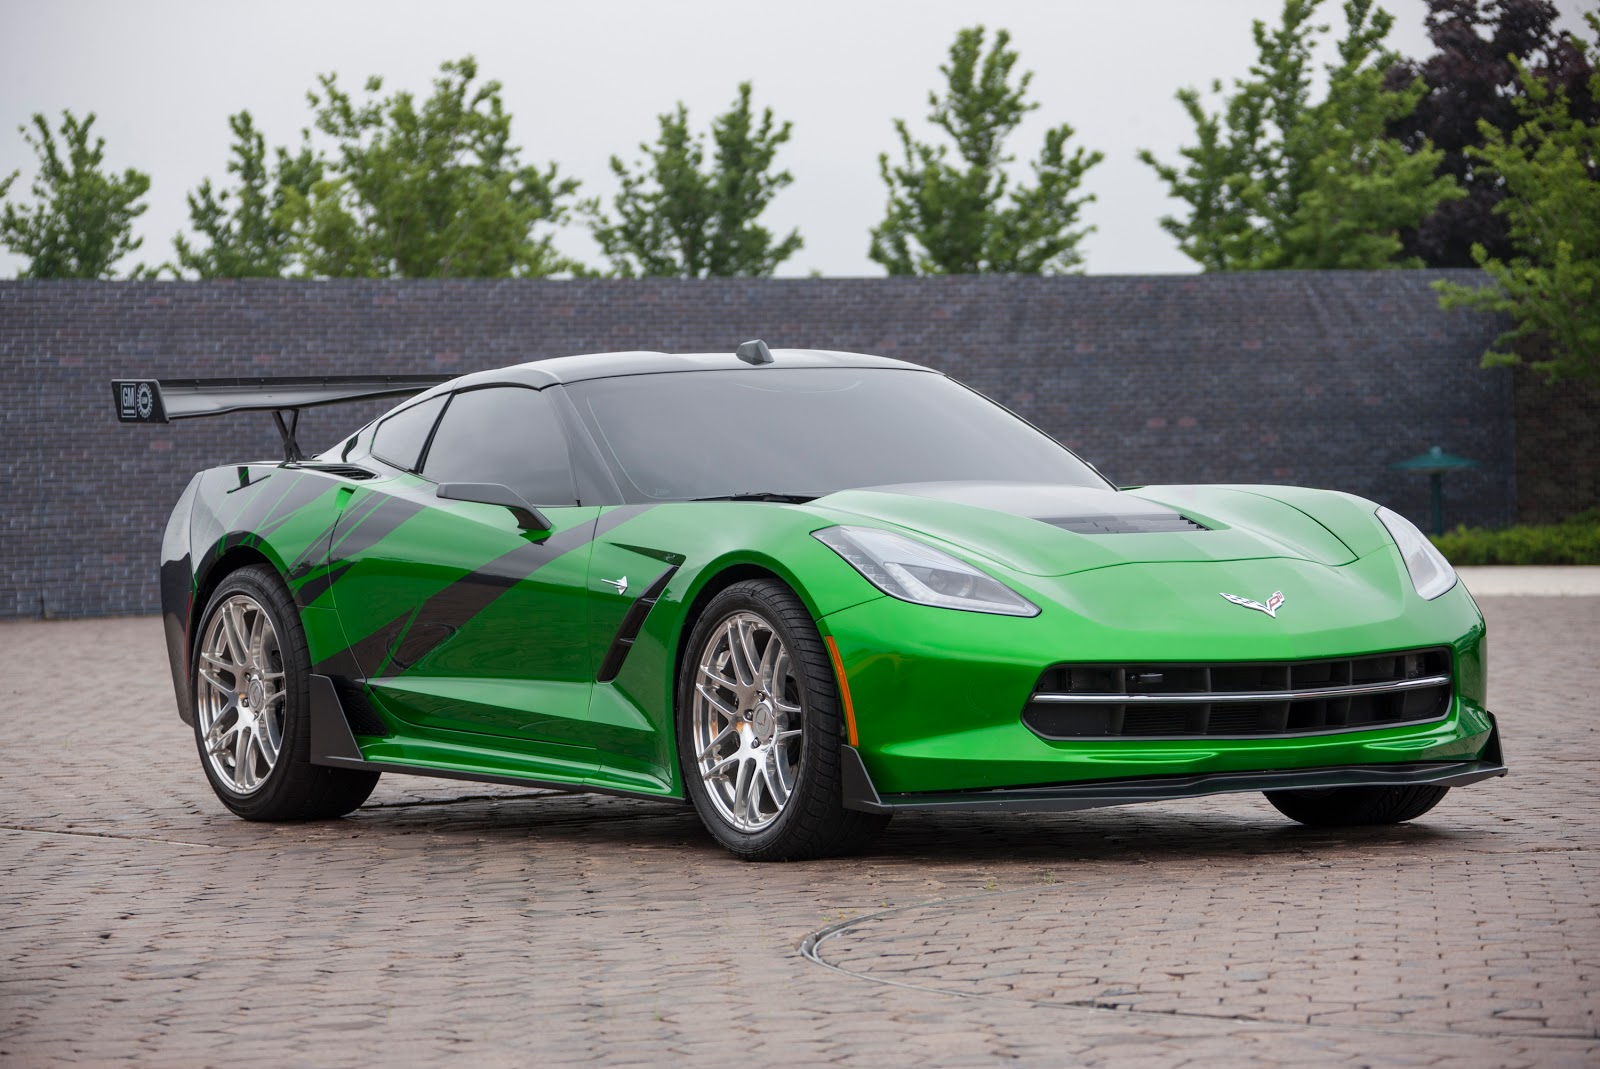 chevrolet corvette stingray transformers. a look at the evolution of bumblebee in transformers movie franchise an corvette stingray chevrolet t